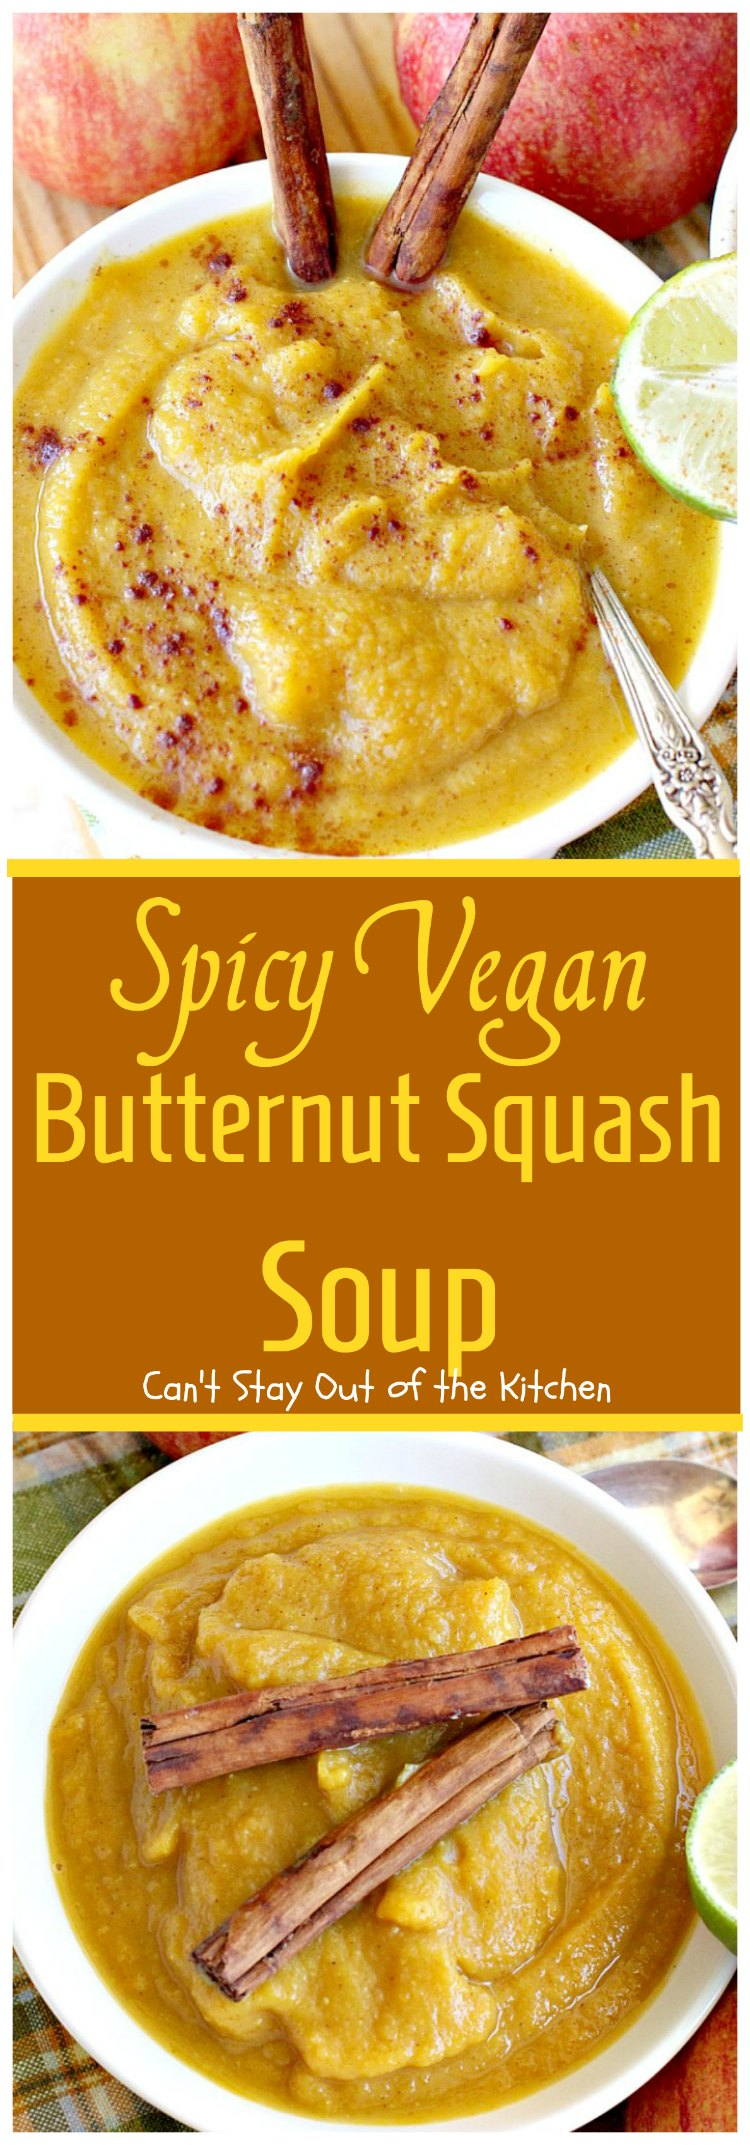 Spicy Vegan Butternut Squash Soup | Can't Stay Out of the Kitchen